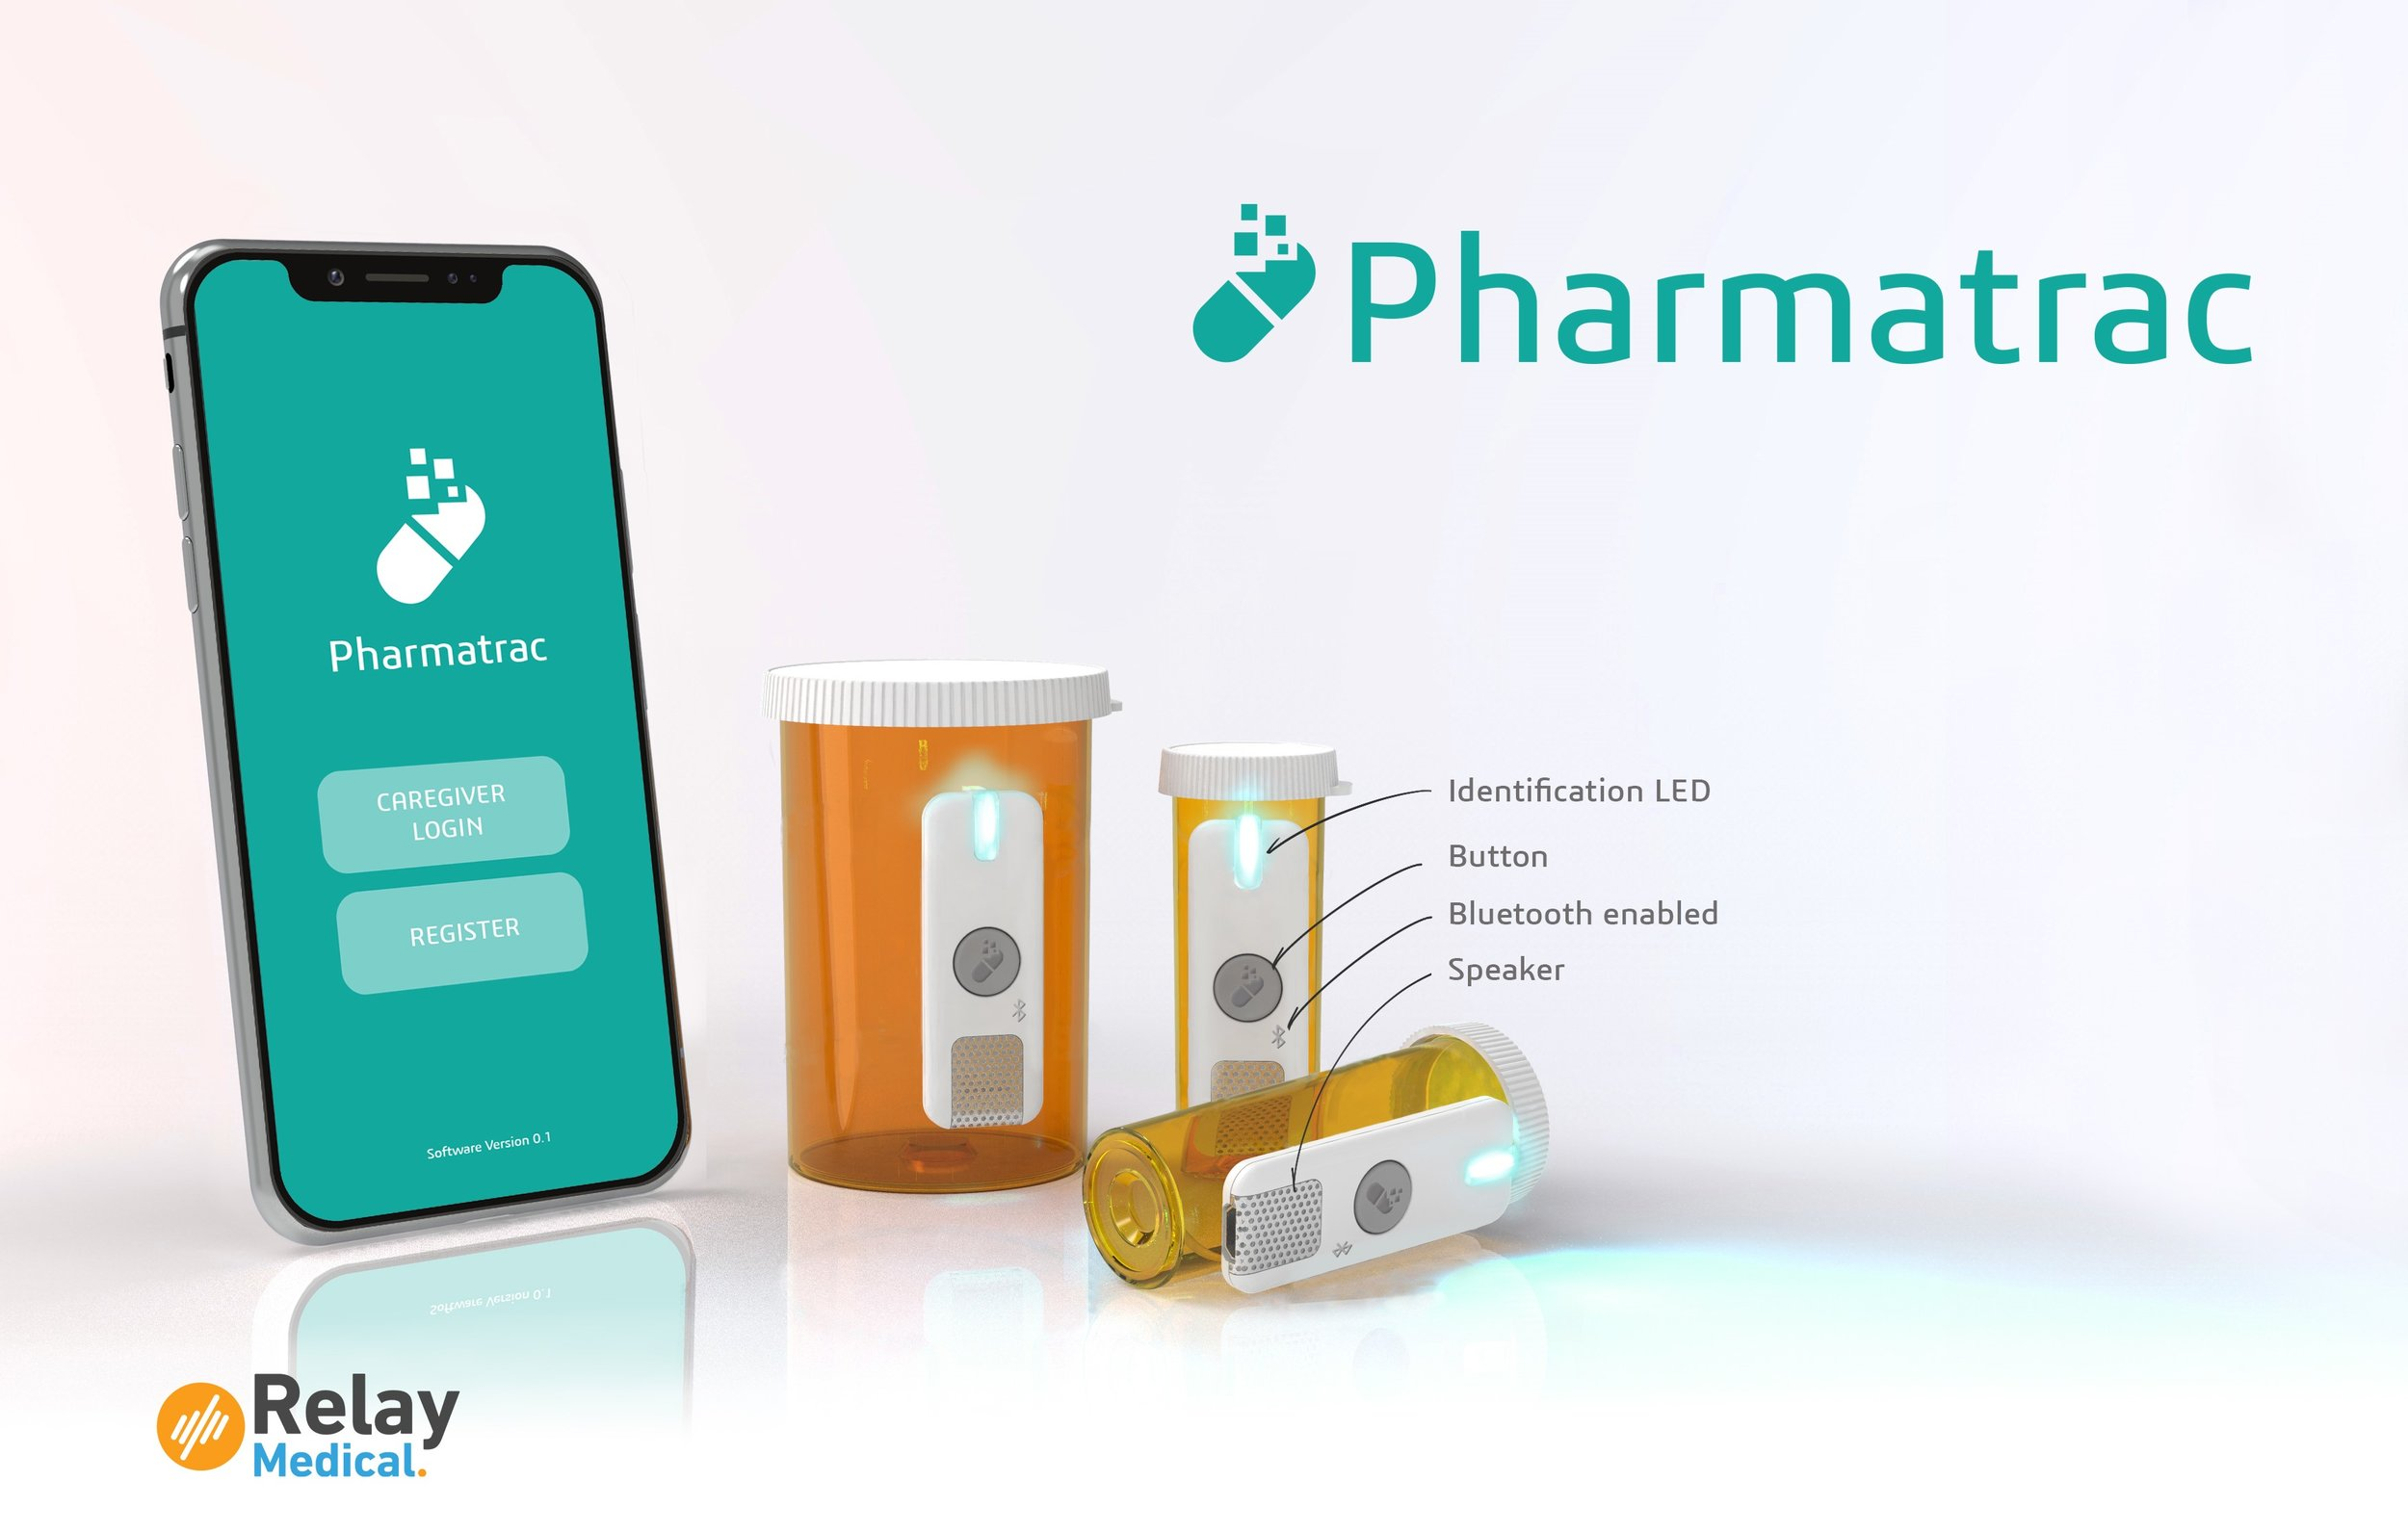 Pharmatrac Digital Label - Hardware Rendering